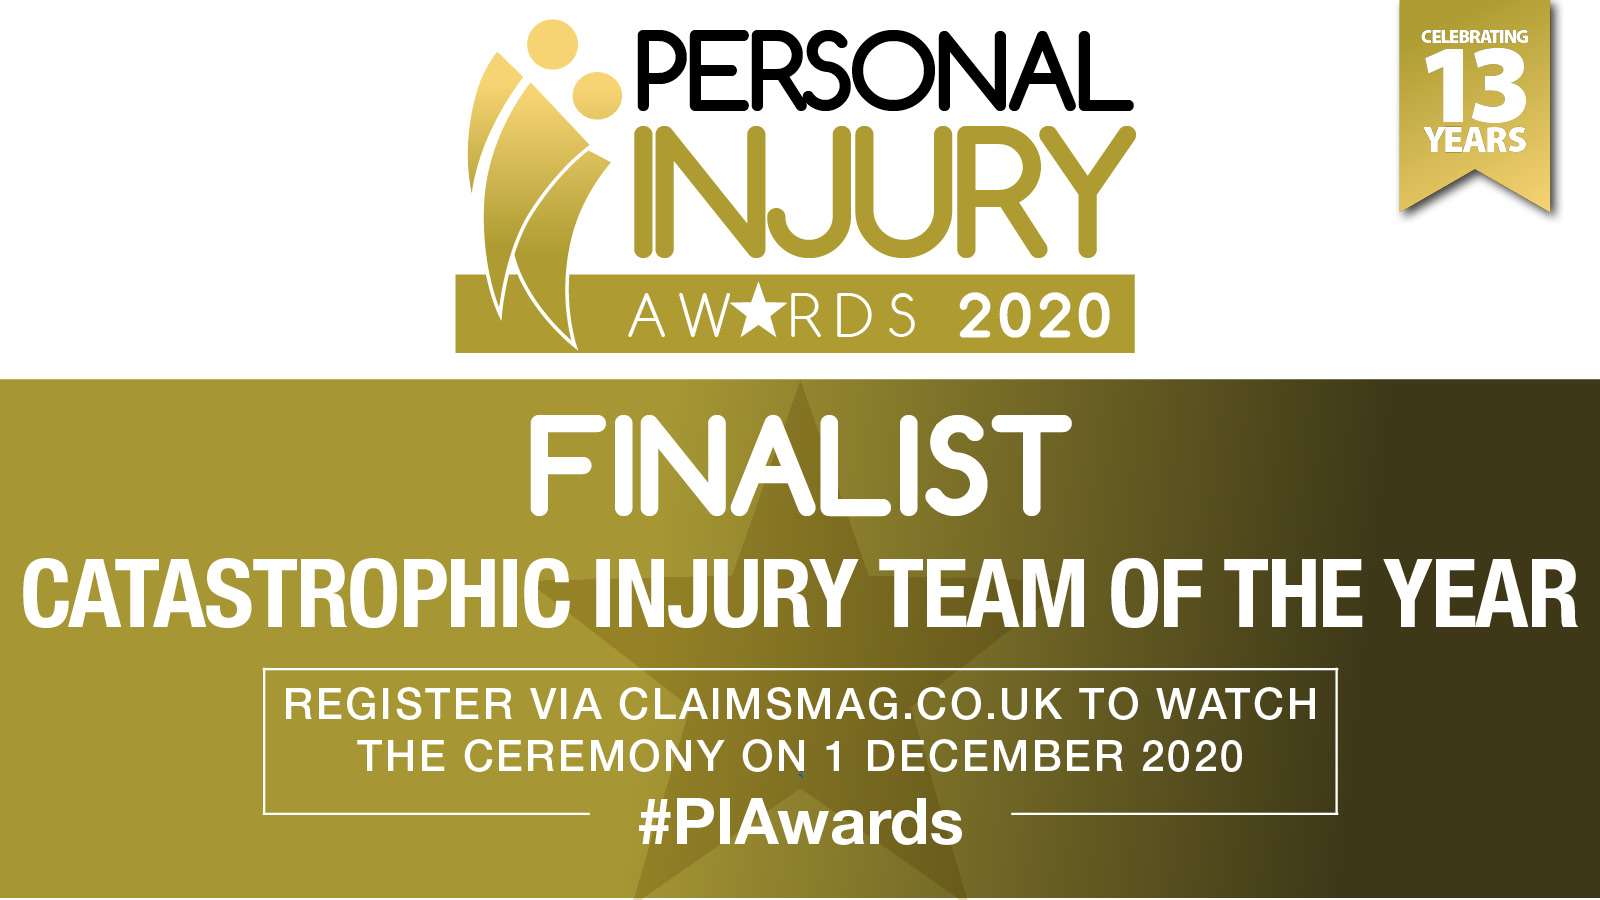 Catastrophic Injury Team of the Year 2020